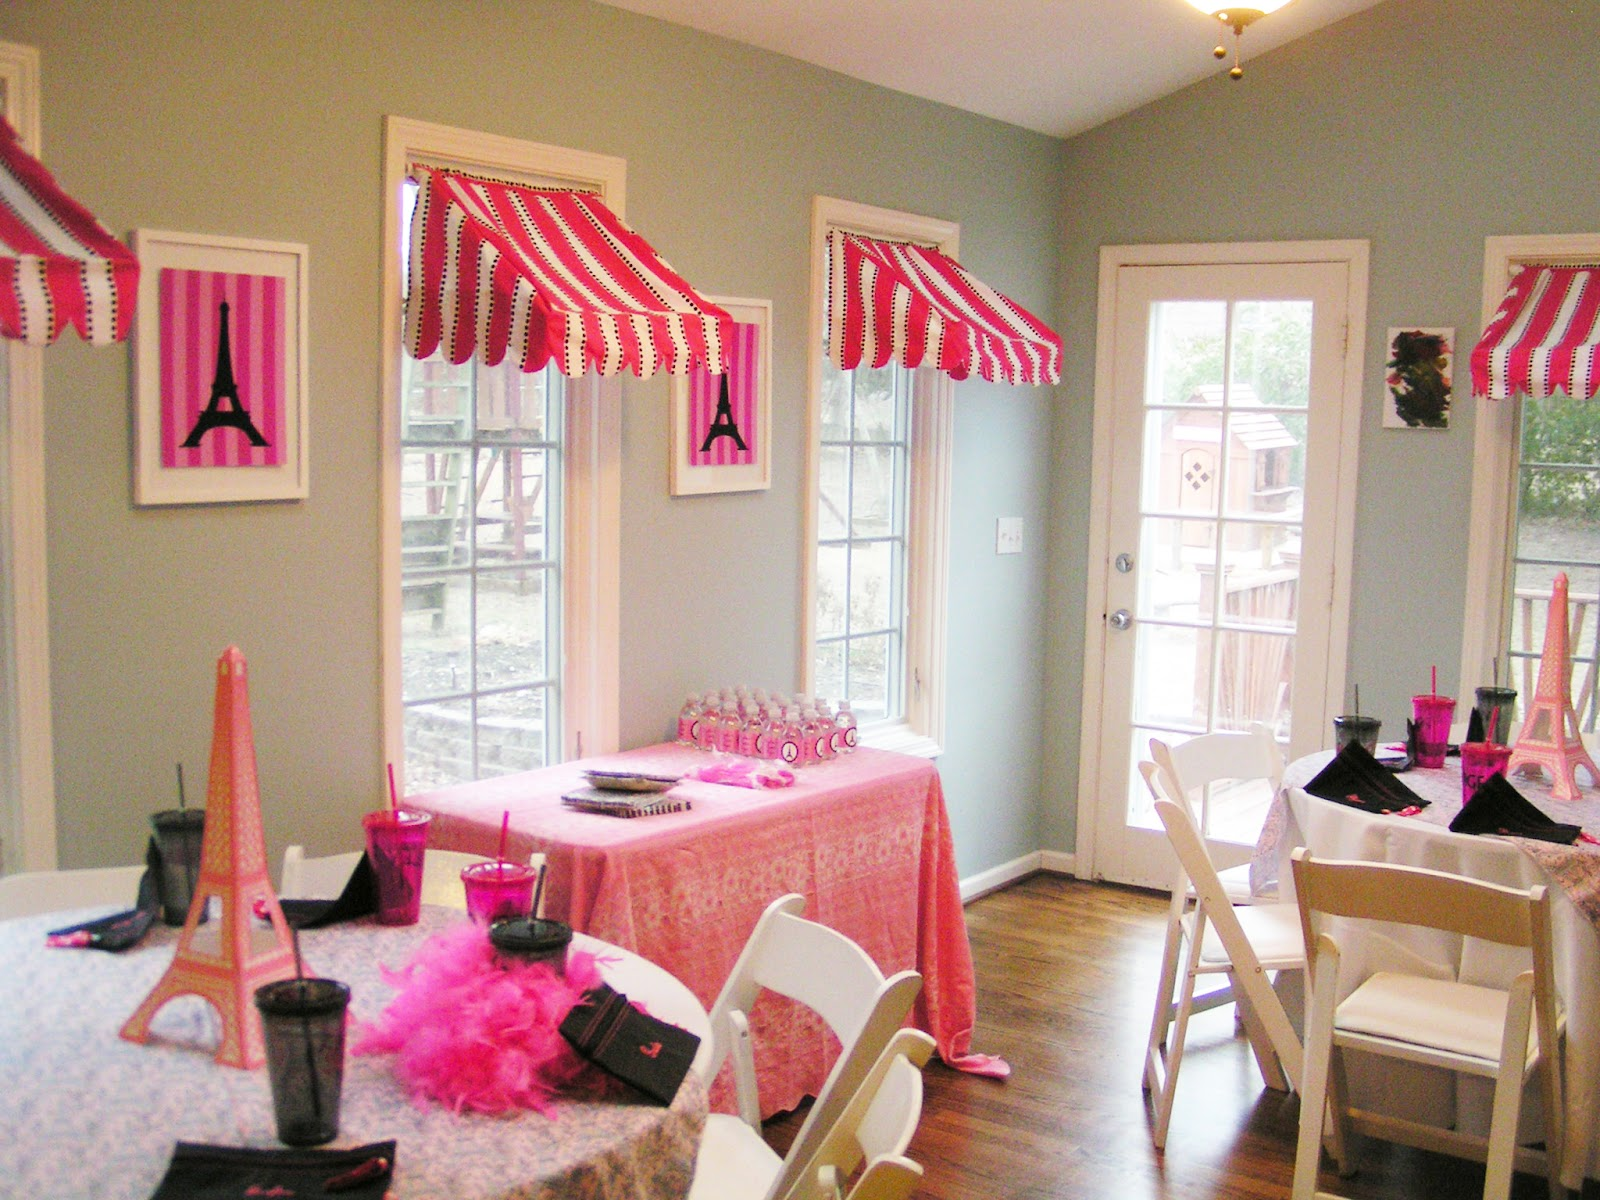 Three Pink Ducks: Paris Birthday Awning Tutorial